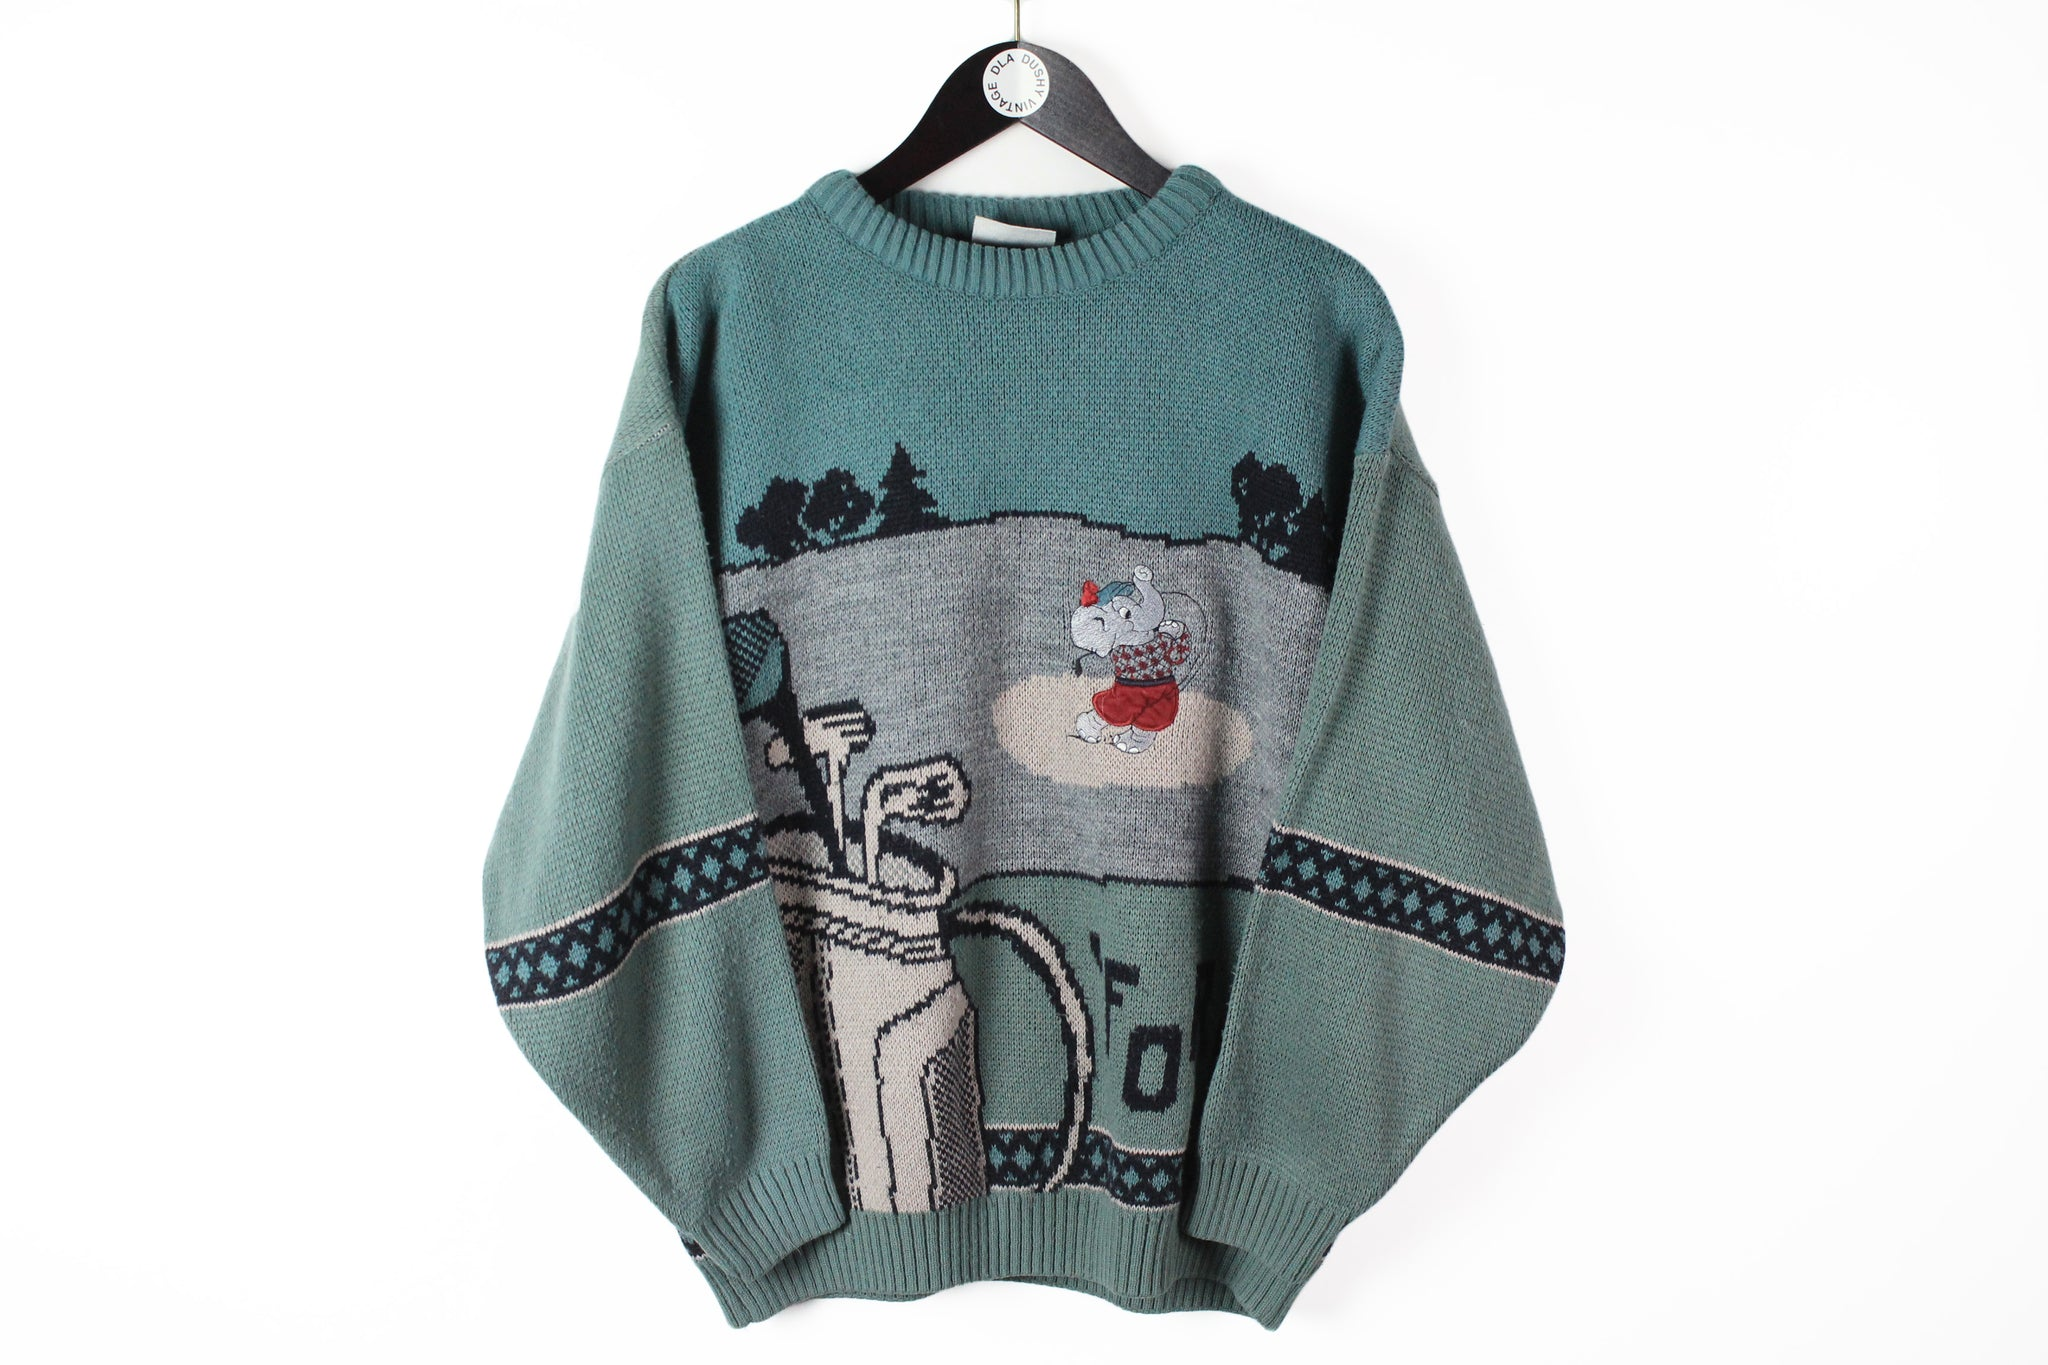 Vintage Golf Sweater Medium elephant green big logo embroidery 90s 80s winter jumper